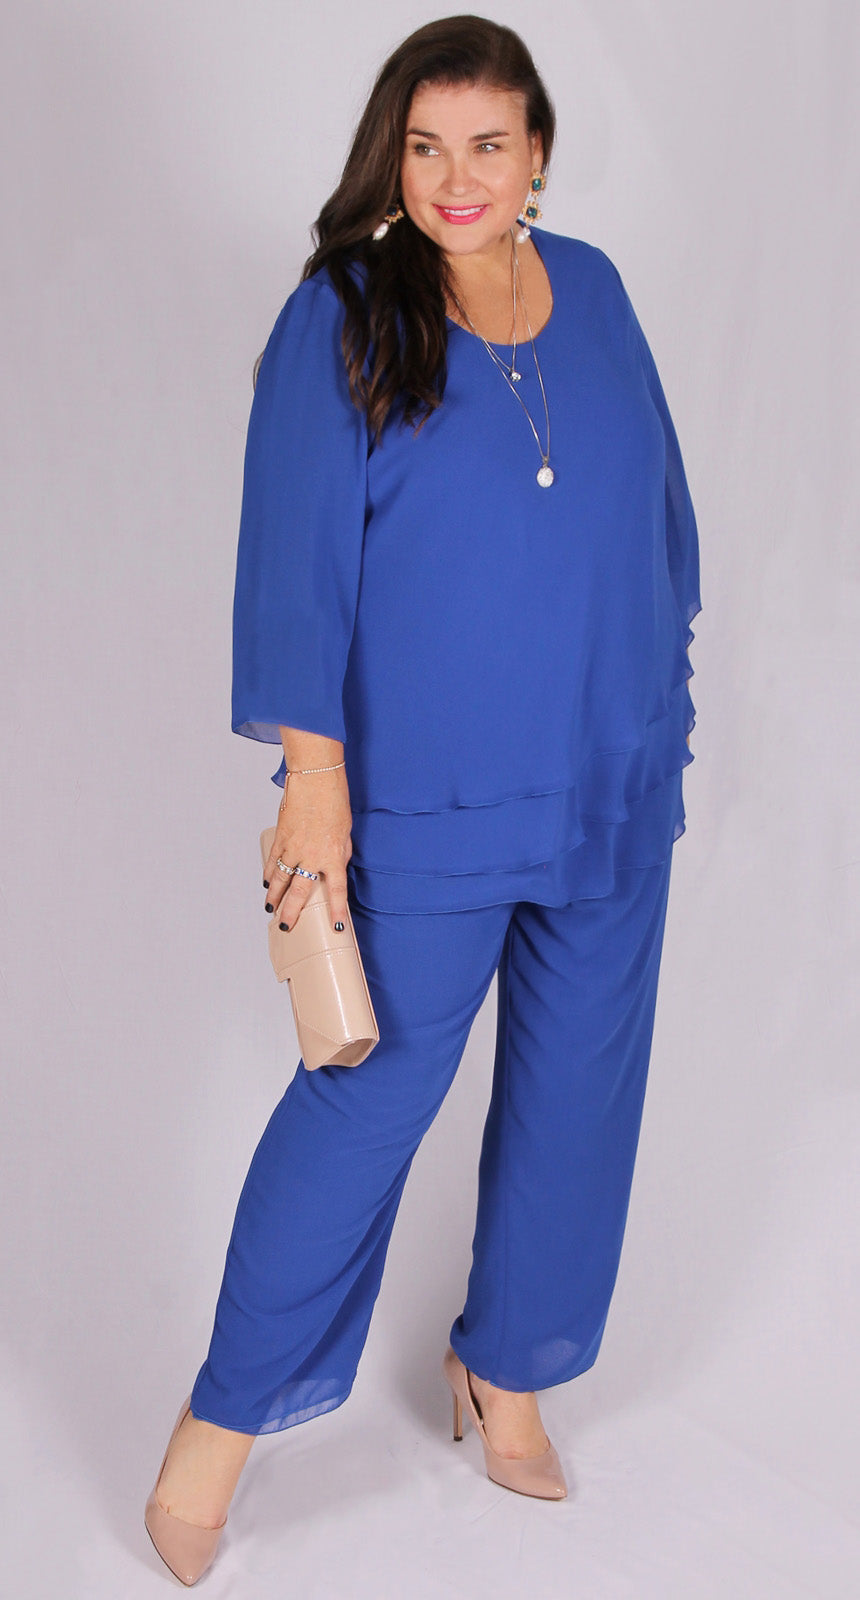 Rosaline Chiffon Layer Top Royal Blue